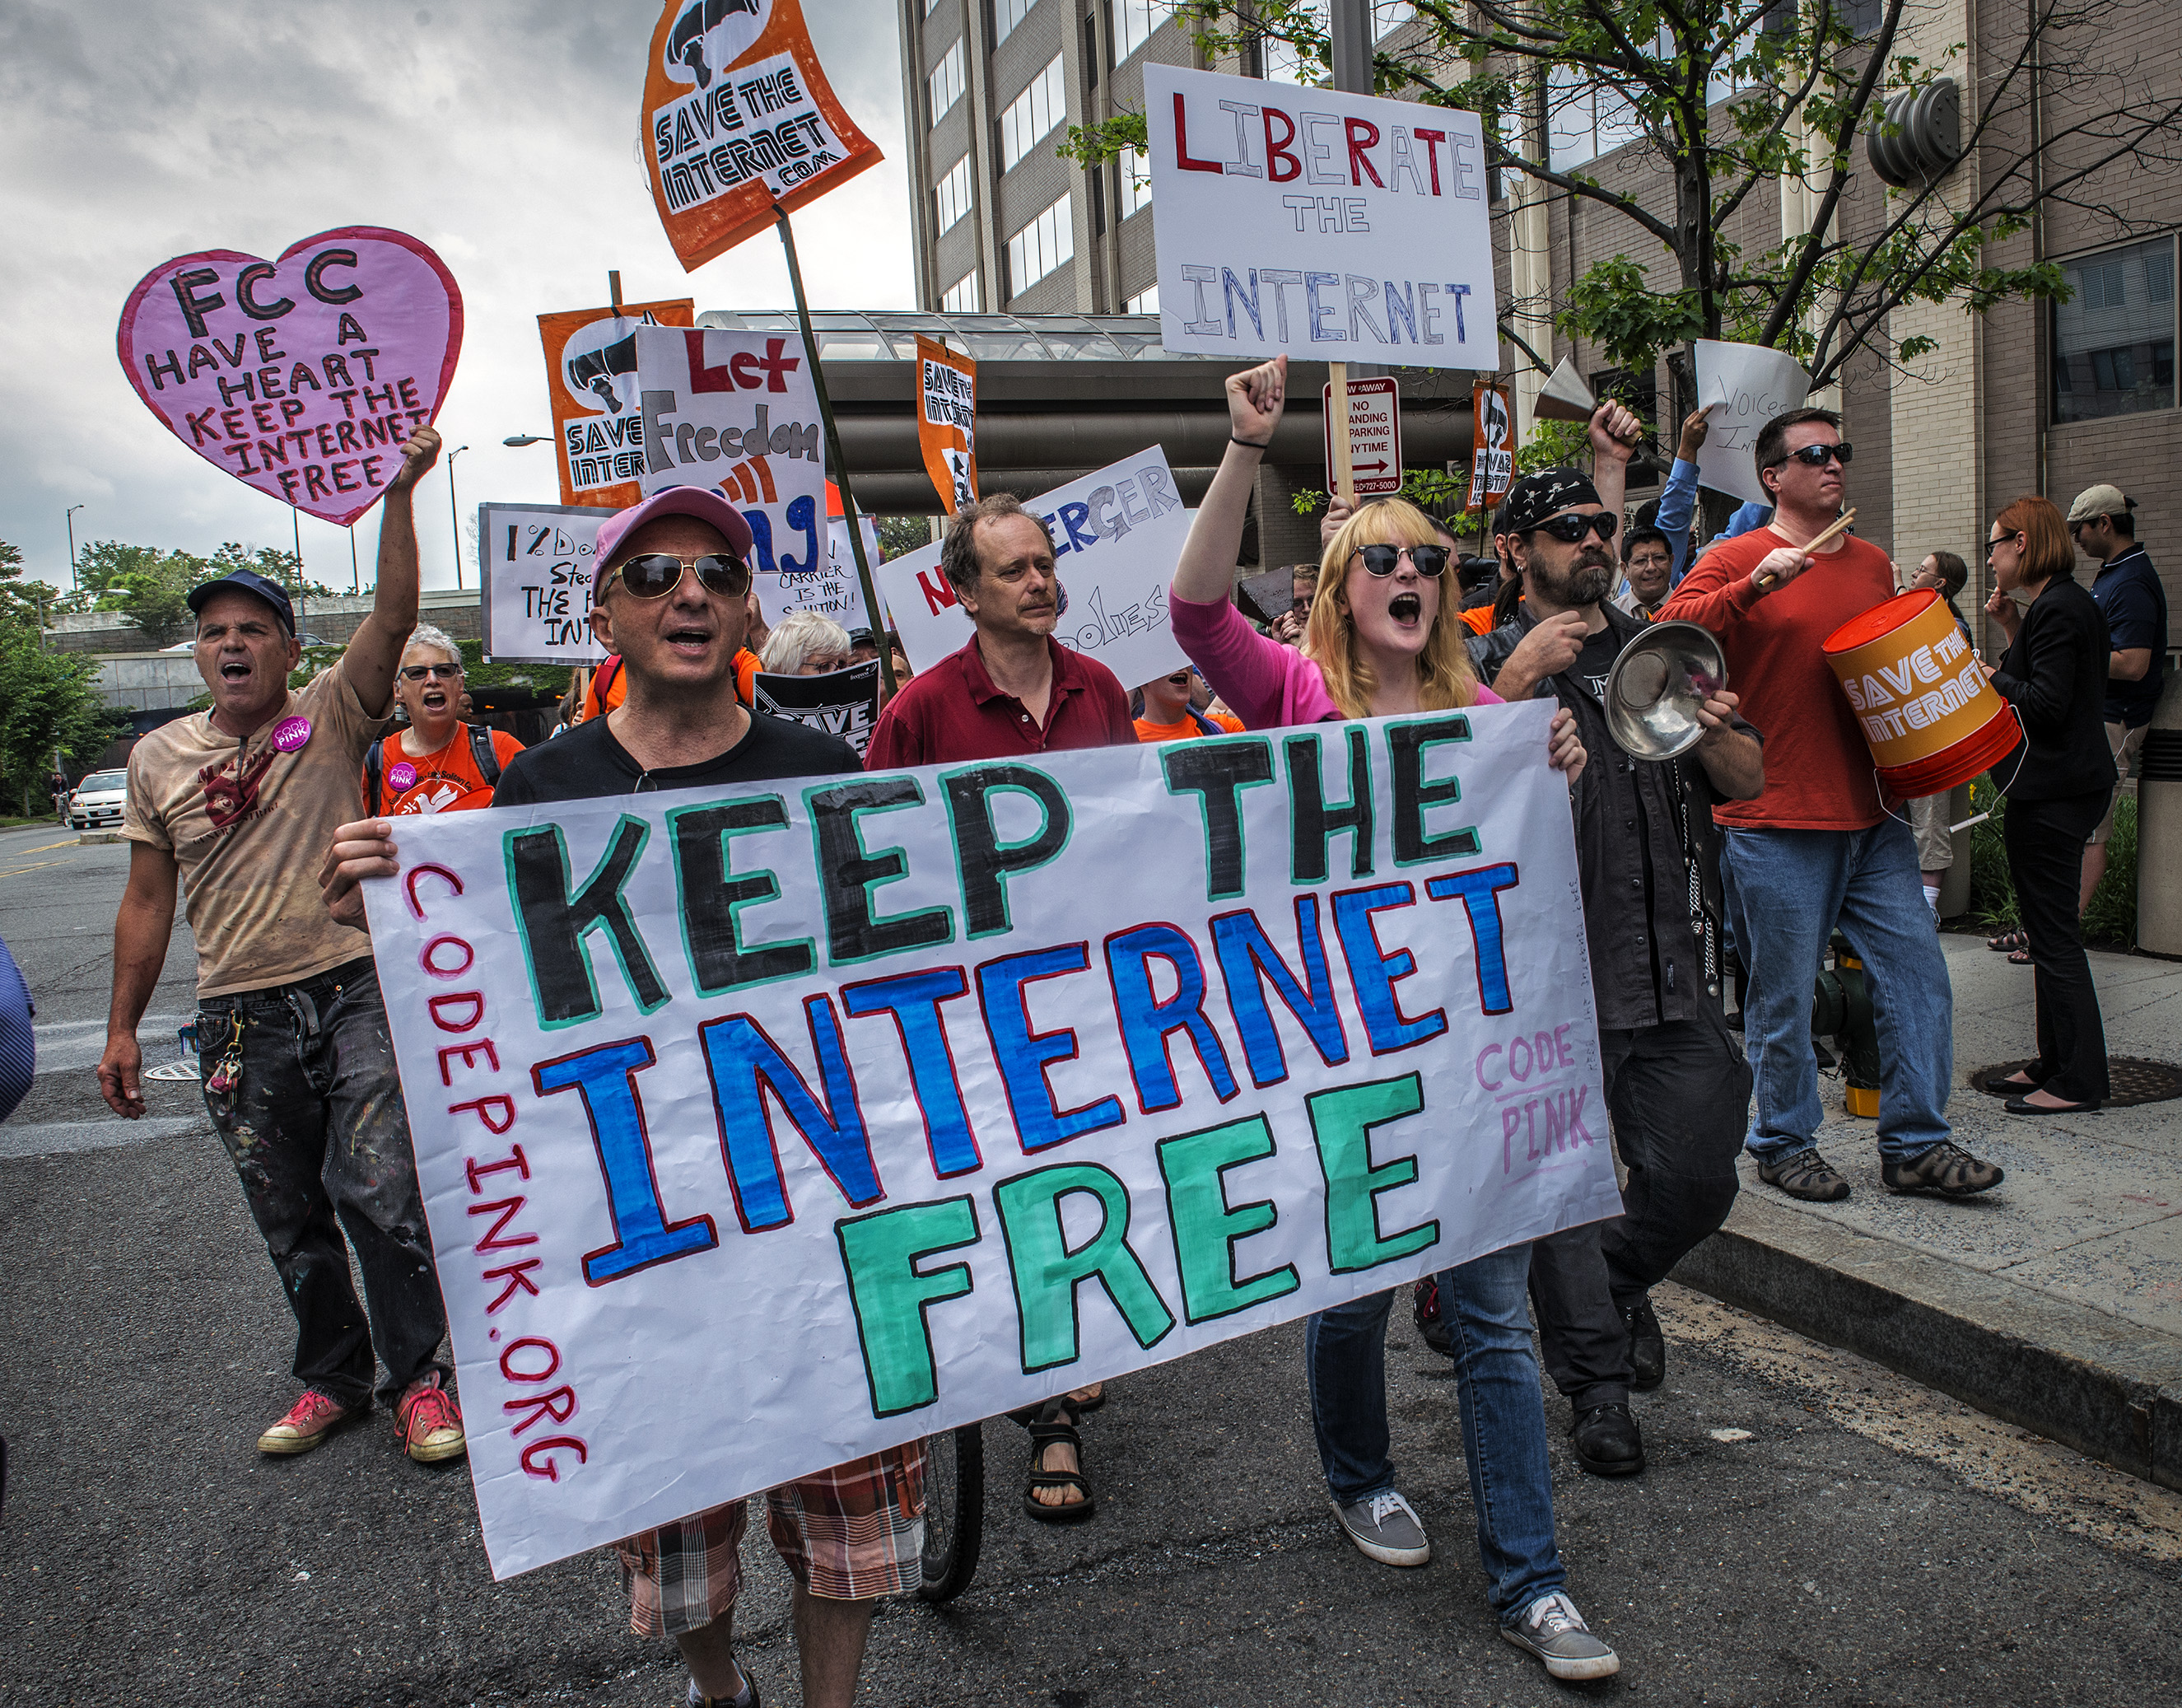 Protesters march past the FCC headquarters before the Commission meeting on net neutrality proposal on May, 15, 2014 in Washington.